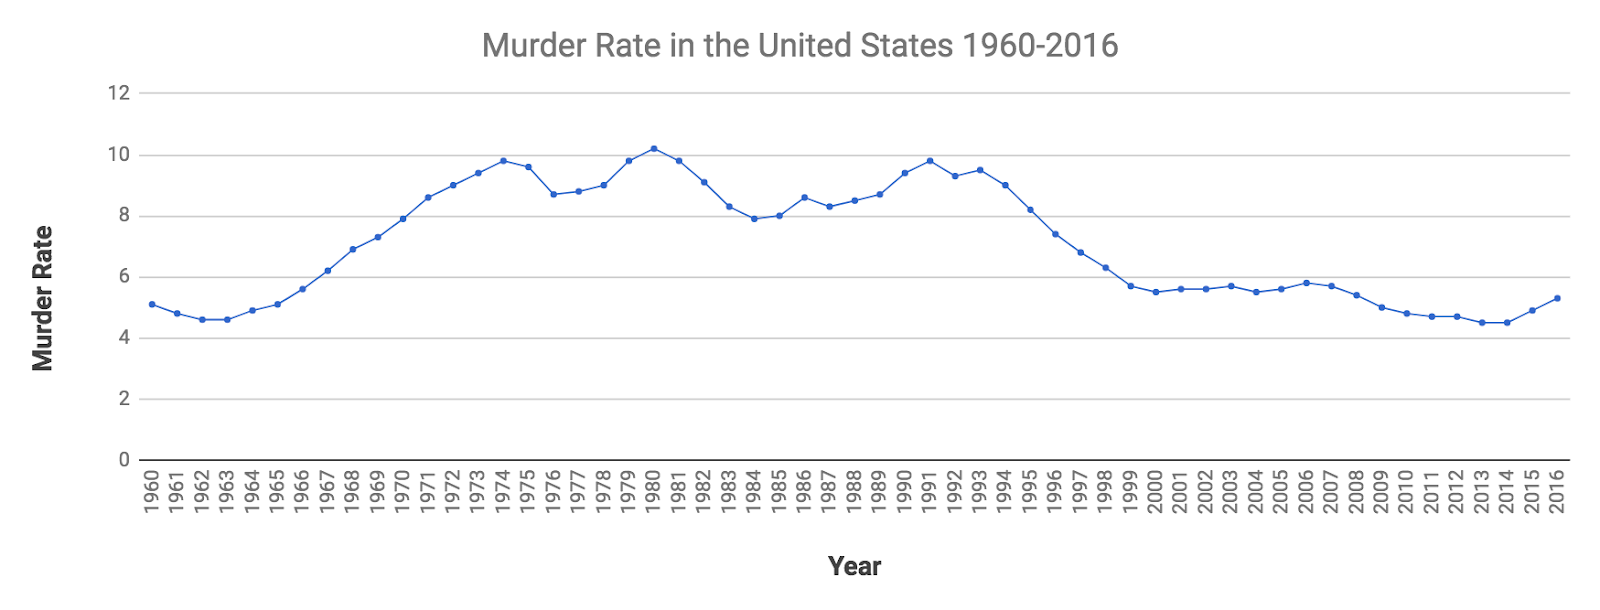 Violent crime is up some, but still well off historical